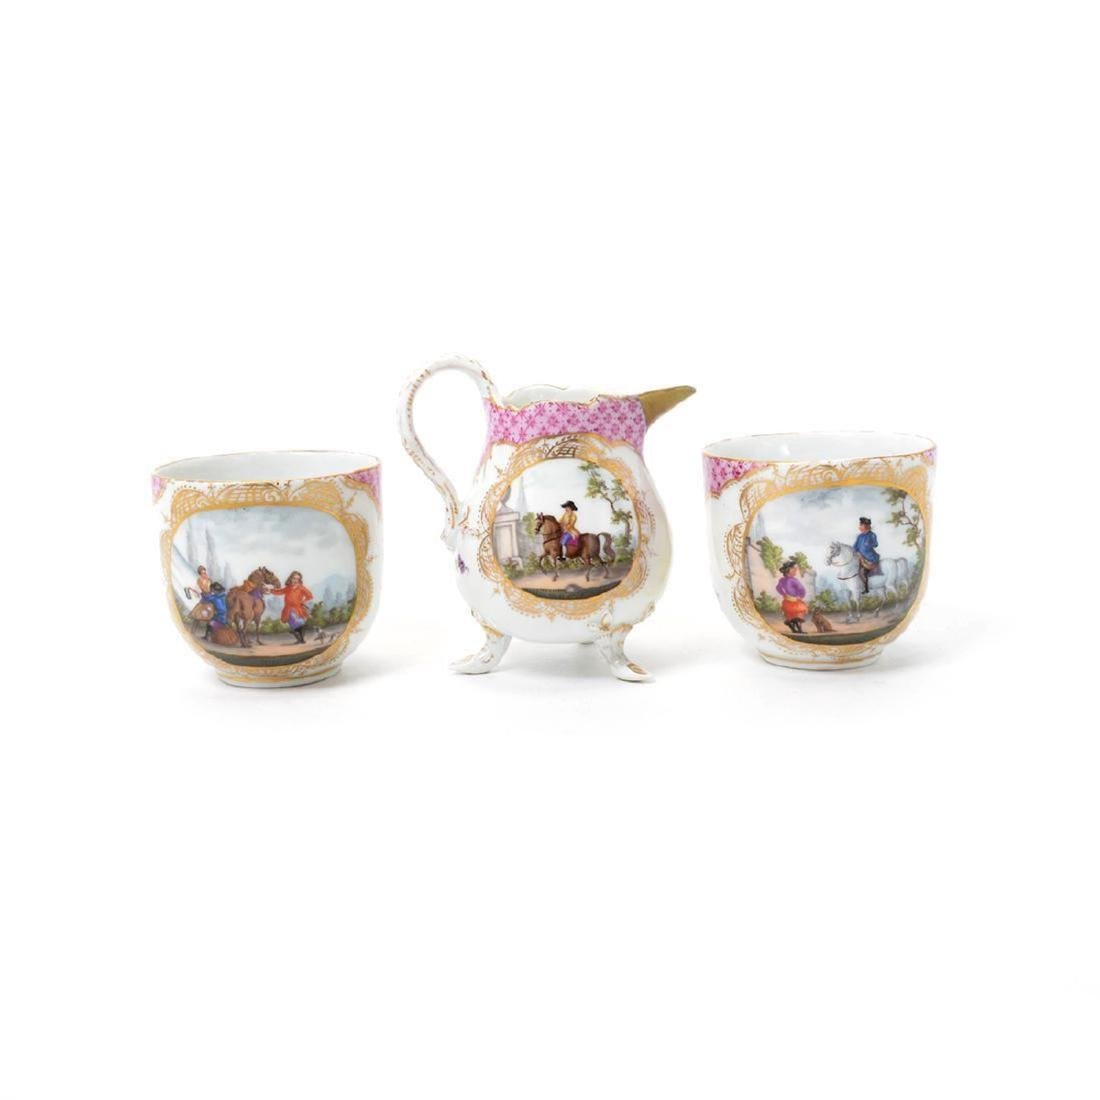 """Meissen"" Porcelain Tea Service/Tray (6 Pcs) - 4"